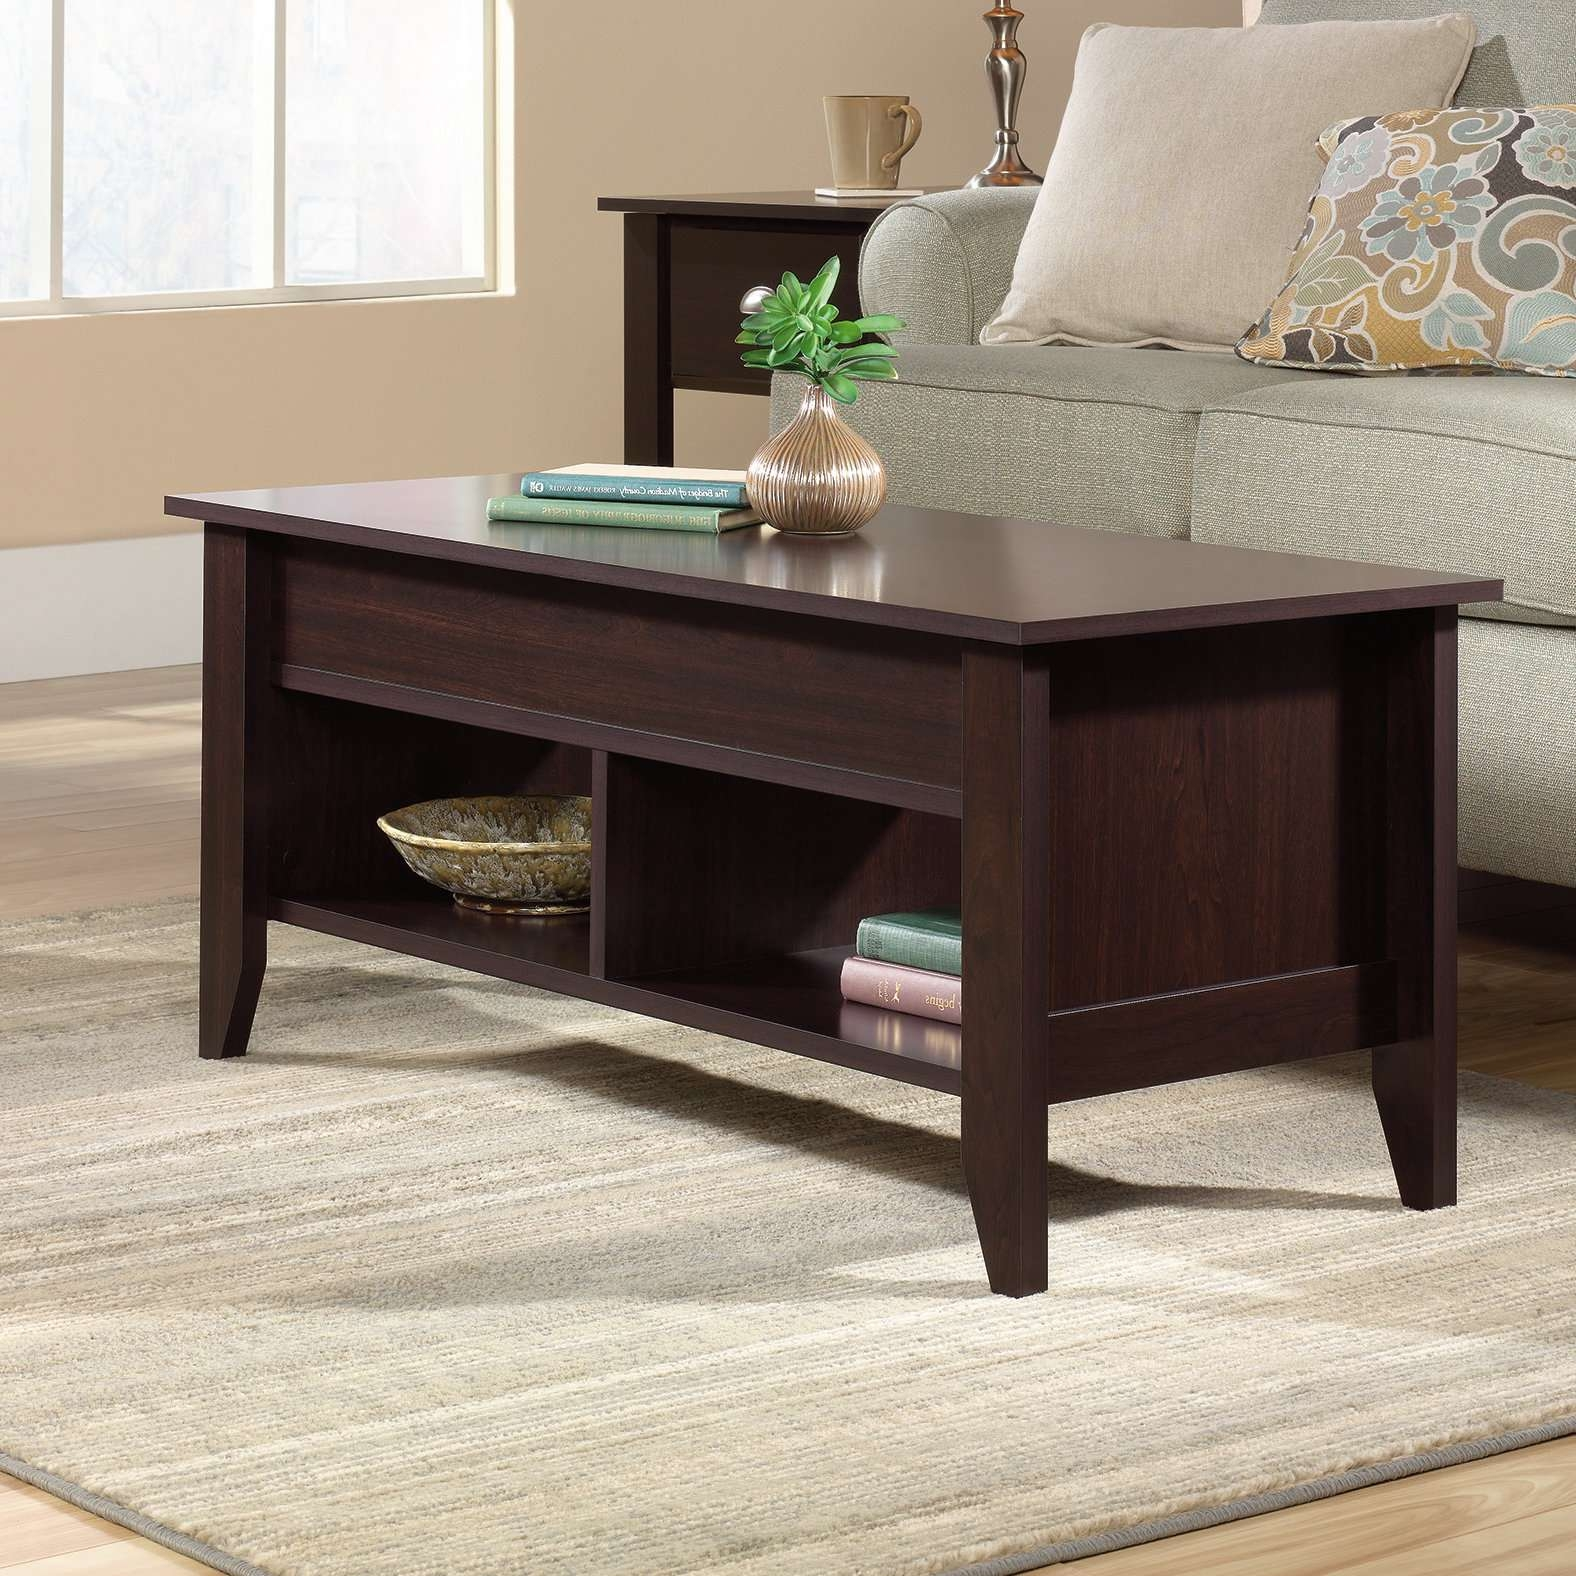 Lift Top Coffee Tables You'll Love (View 12 of 20)